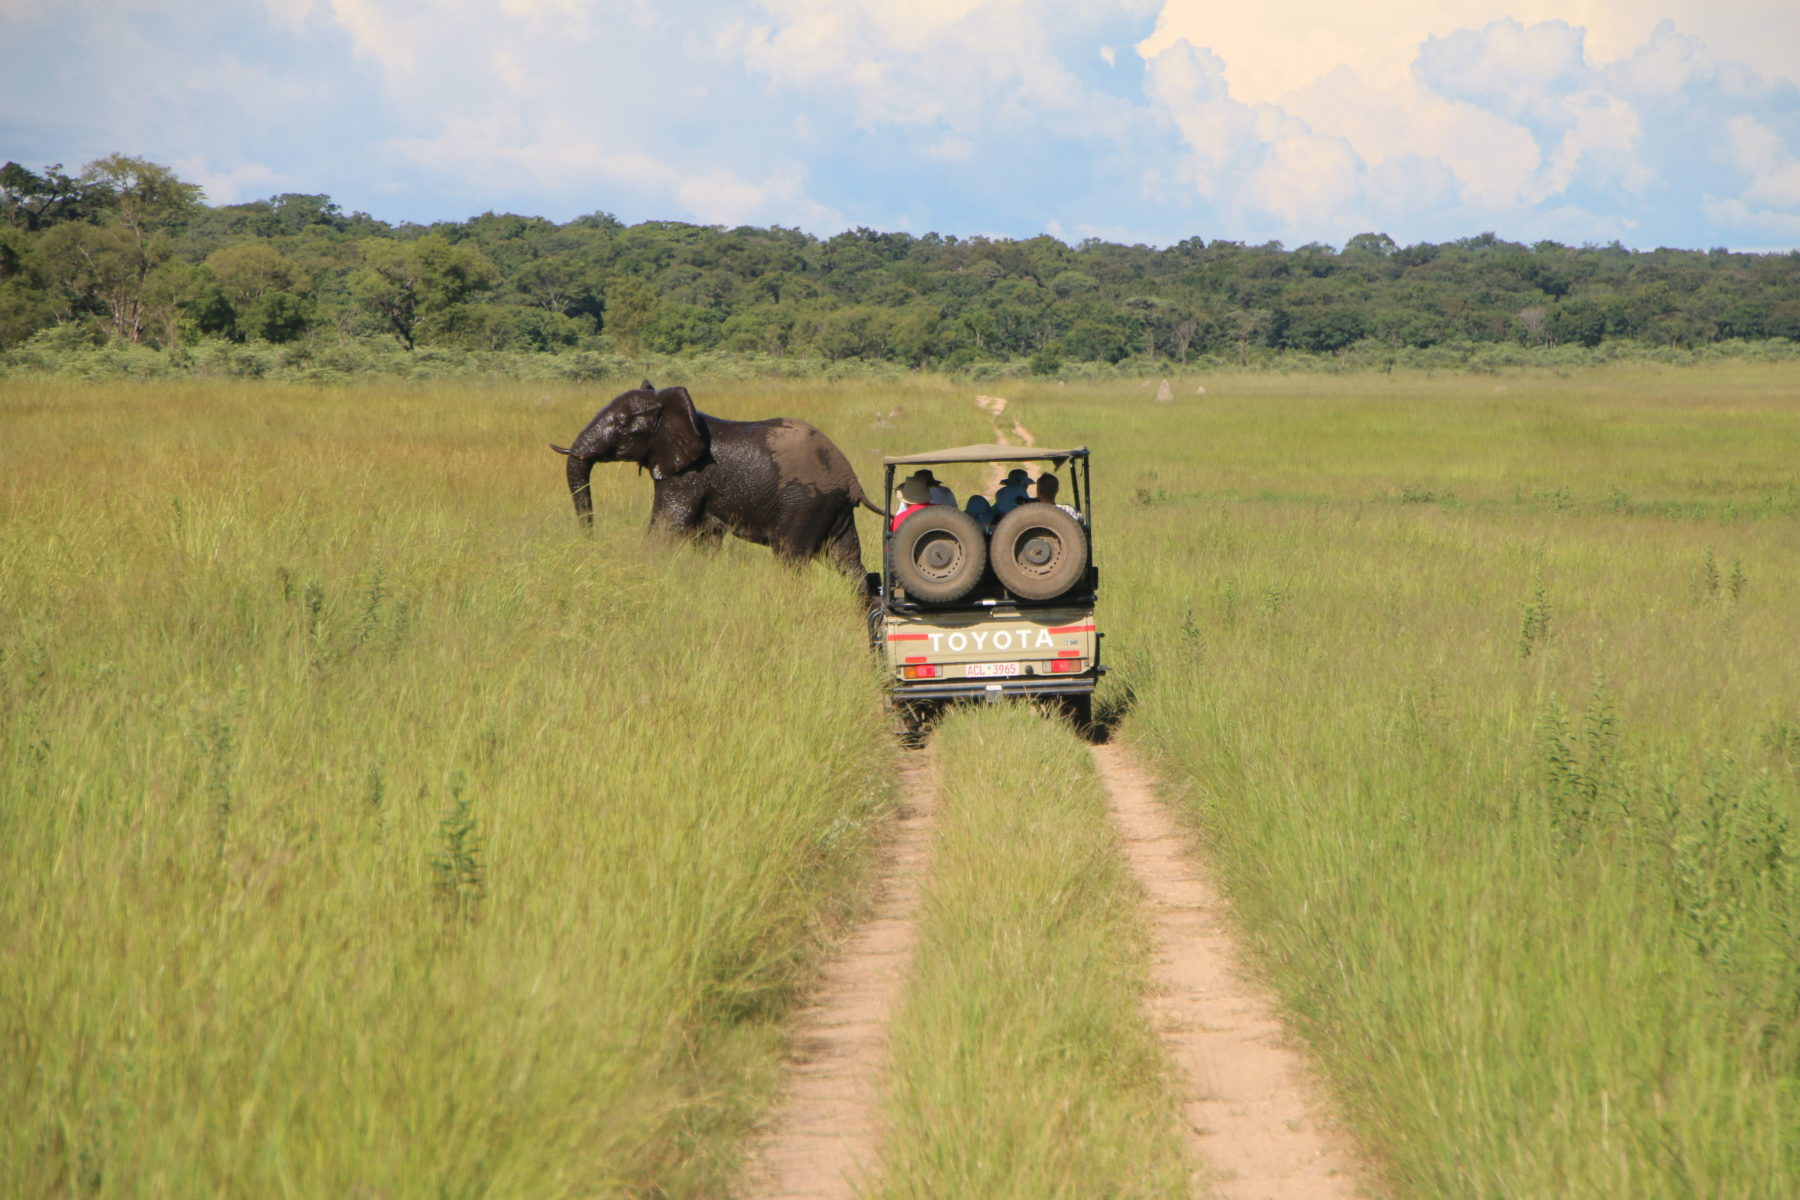 Tourists in a vehicle driving towards an elephant